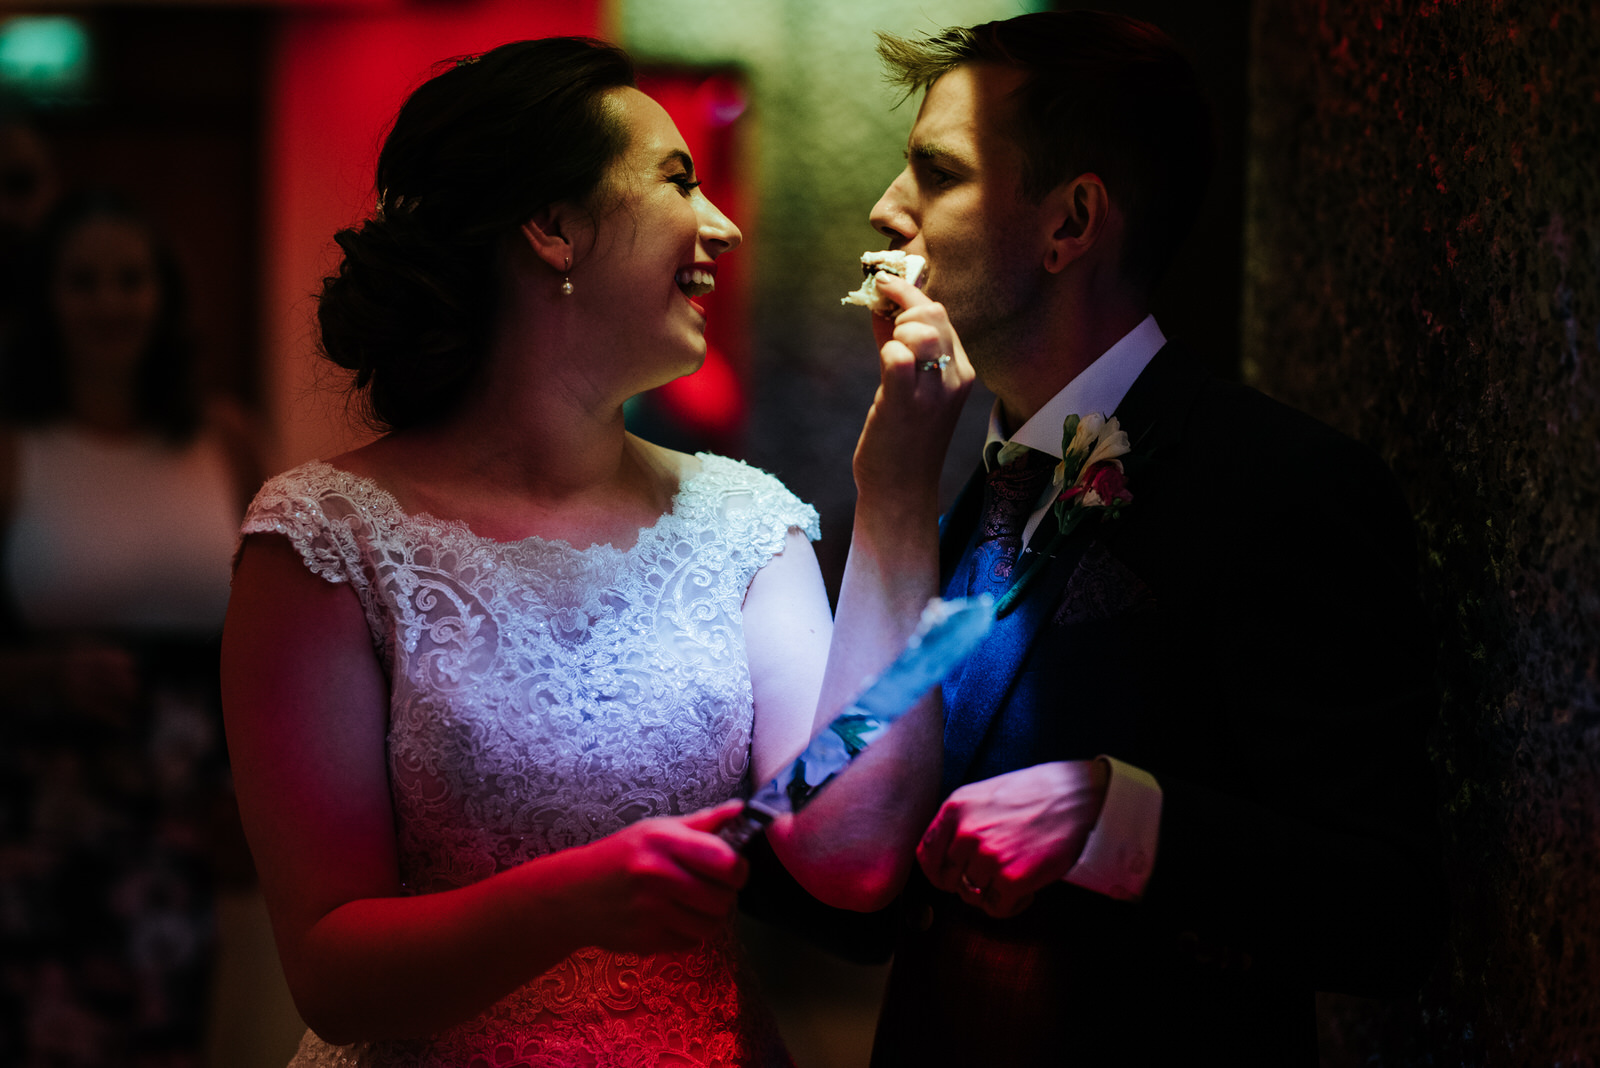 Bride and groom feed each other a slice of cake under funky, art